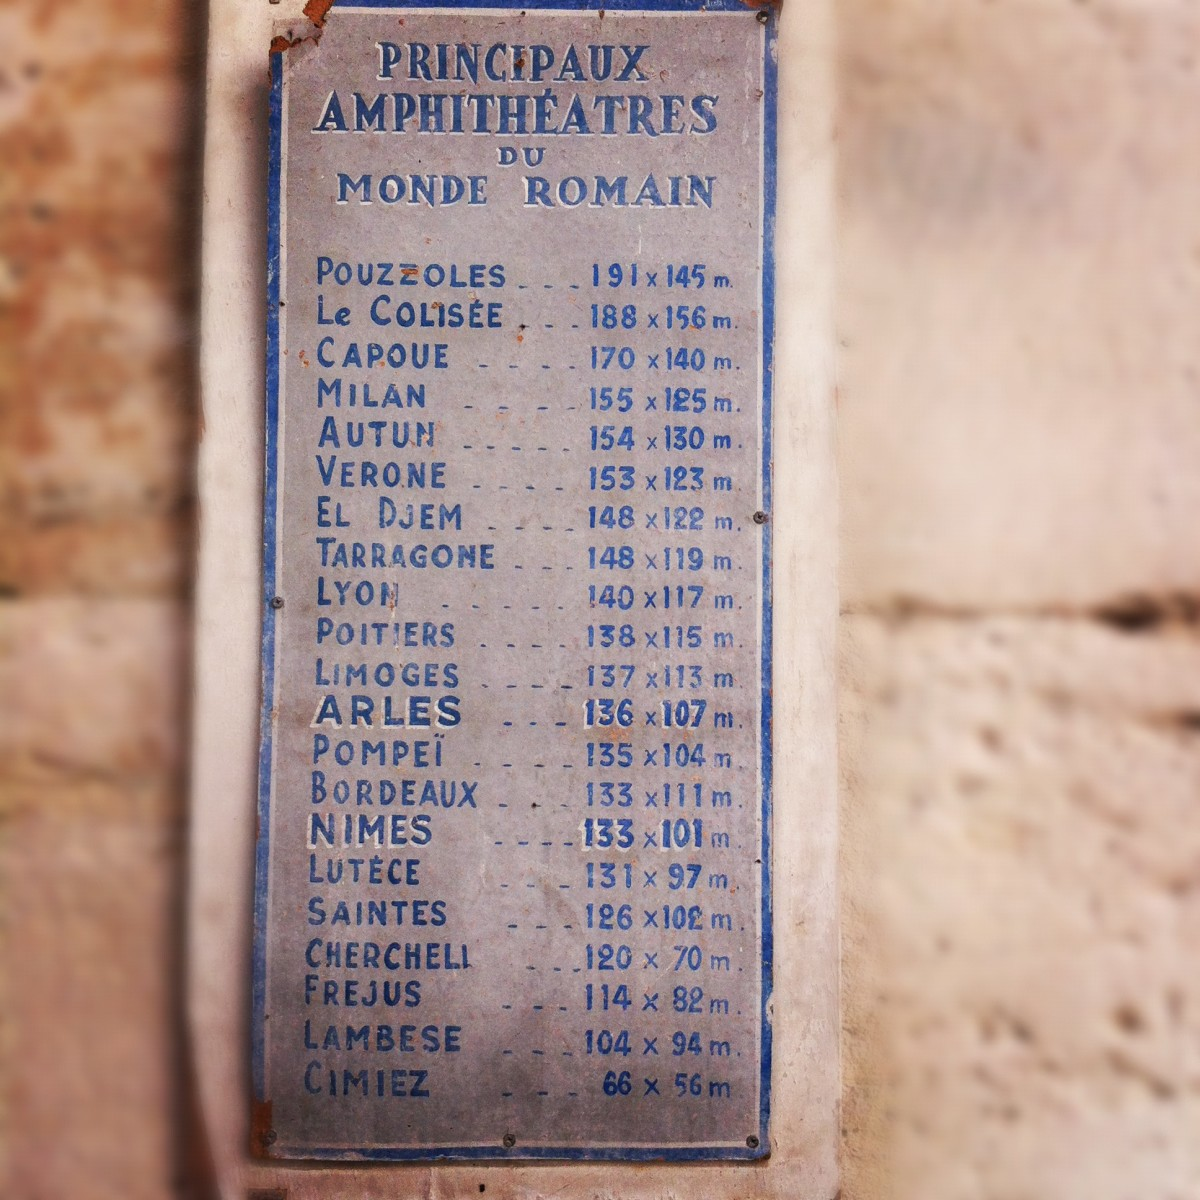 This plaque, just inside the entrance, shows that the Arles Amphitheater was the 12th largest in ancient Rome.